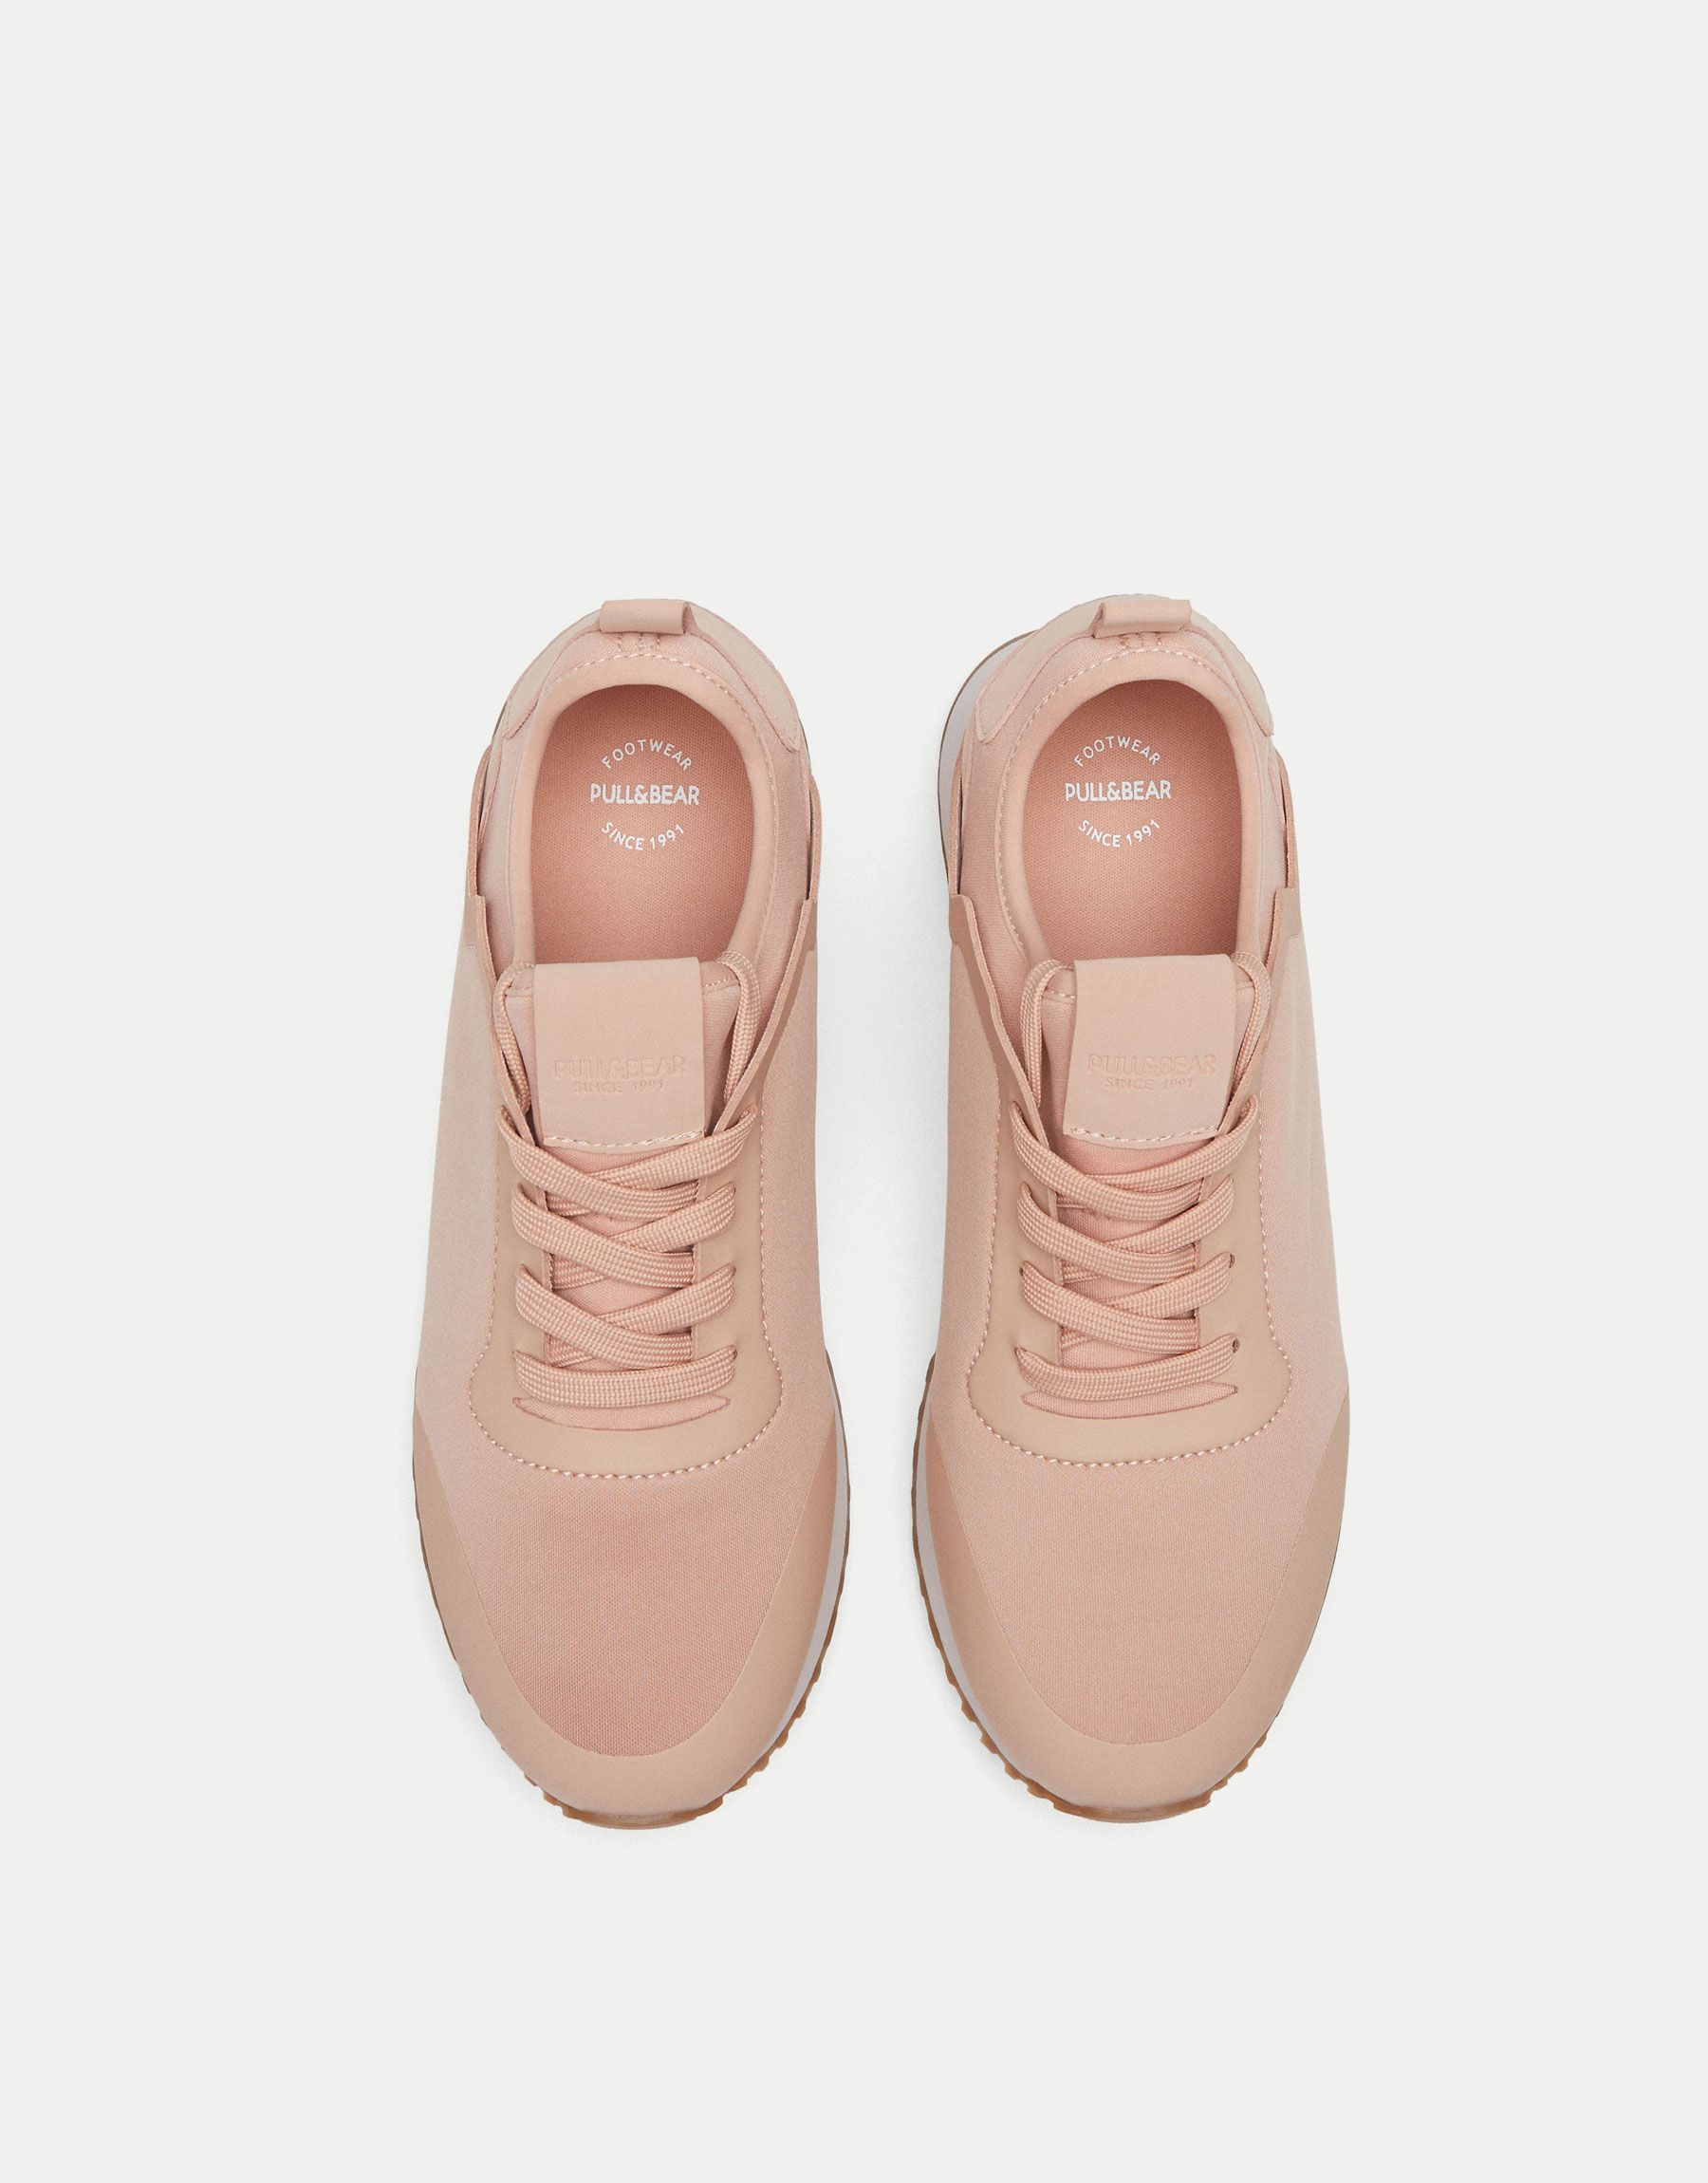 Street Sneakers See All Shoes Woman Pull Bear Serbia Shoes Couple Shoes Womens Sneakers